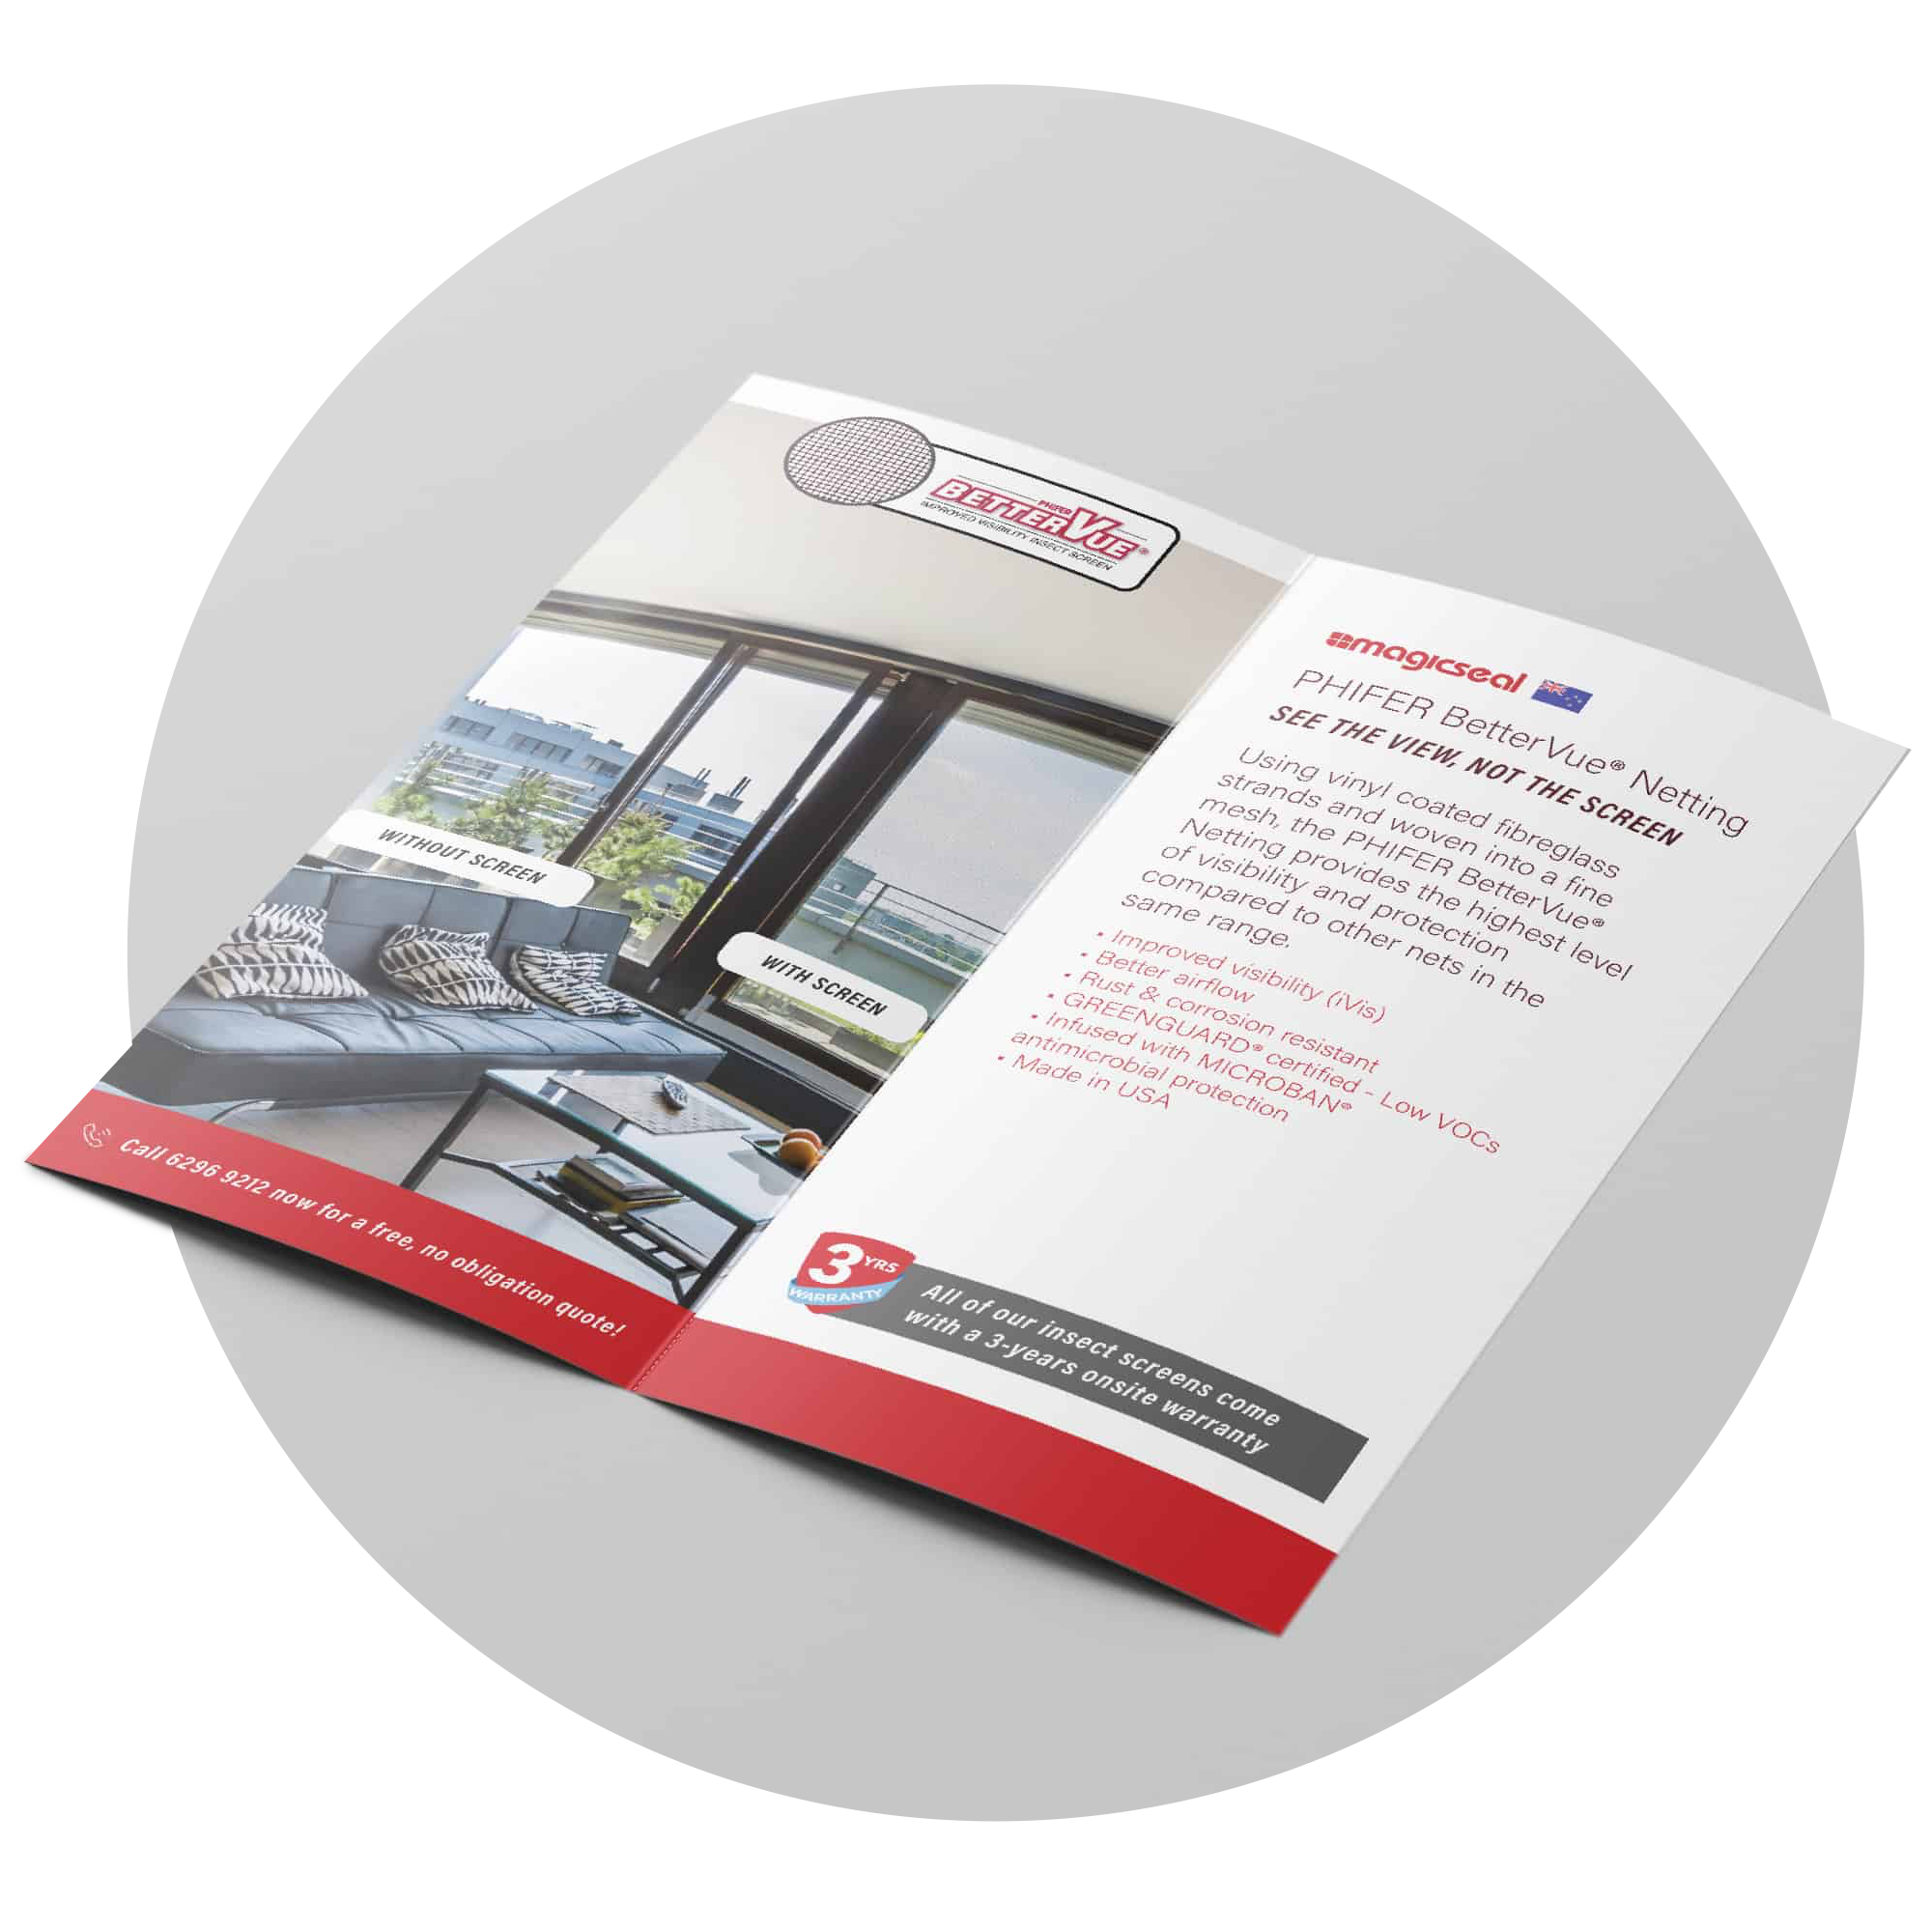 Enticing Brochures For Your Customers